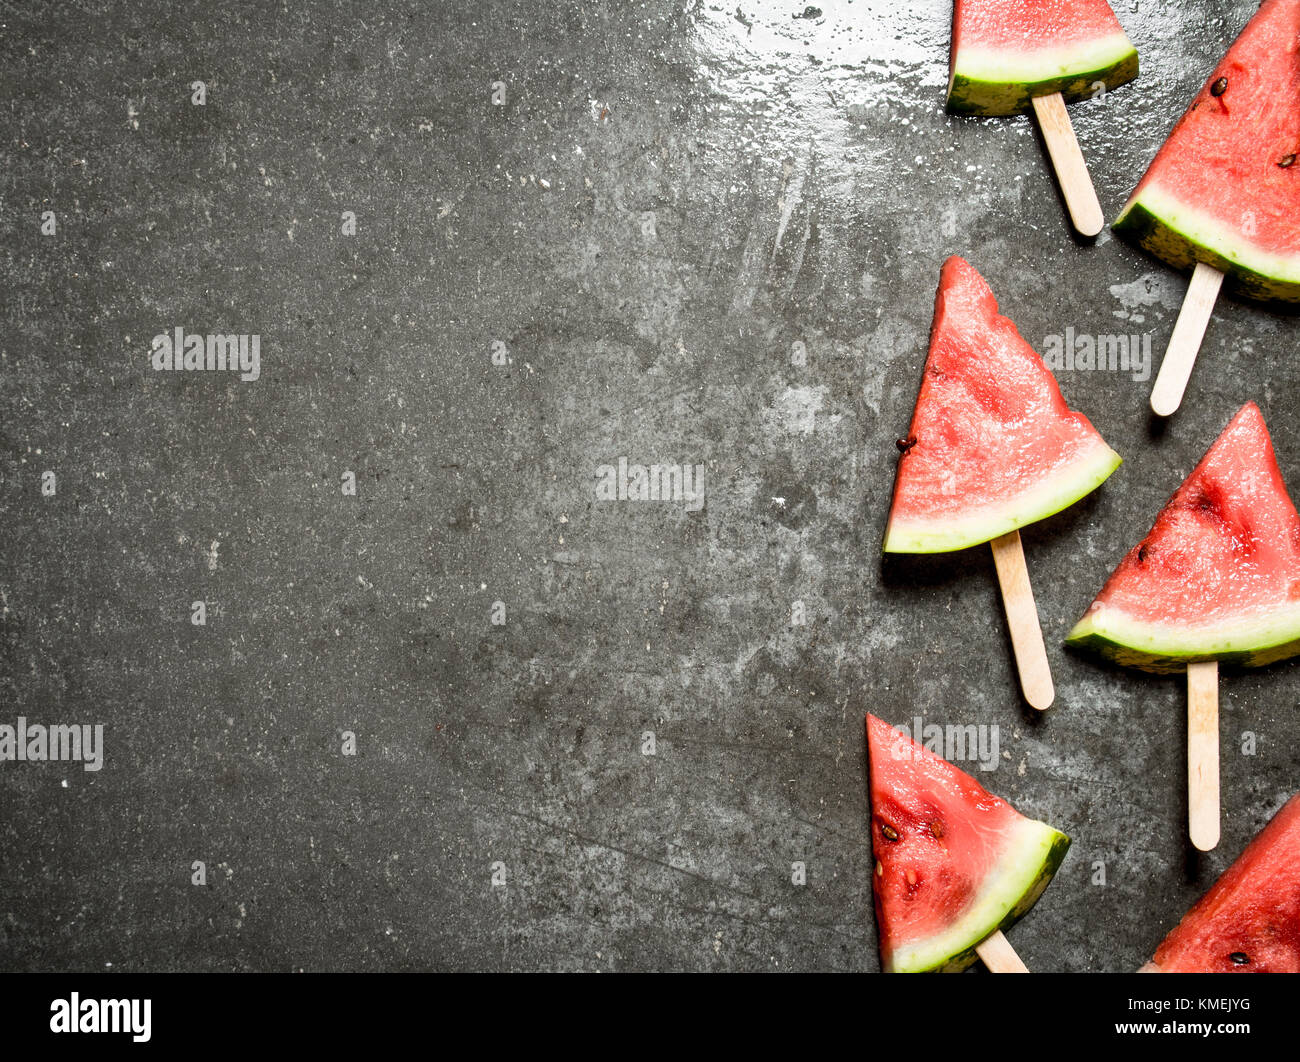 Slices of watermelon on wooden sticks. On the stone table. - Stock Image